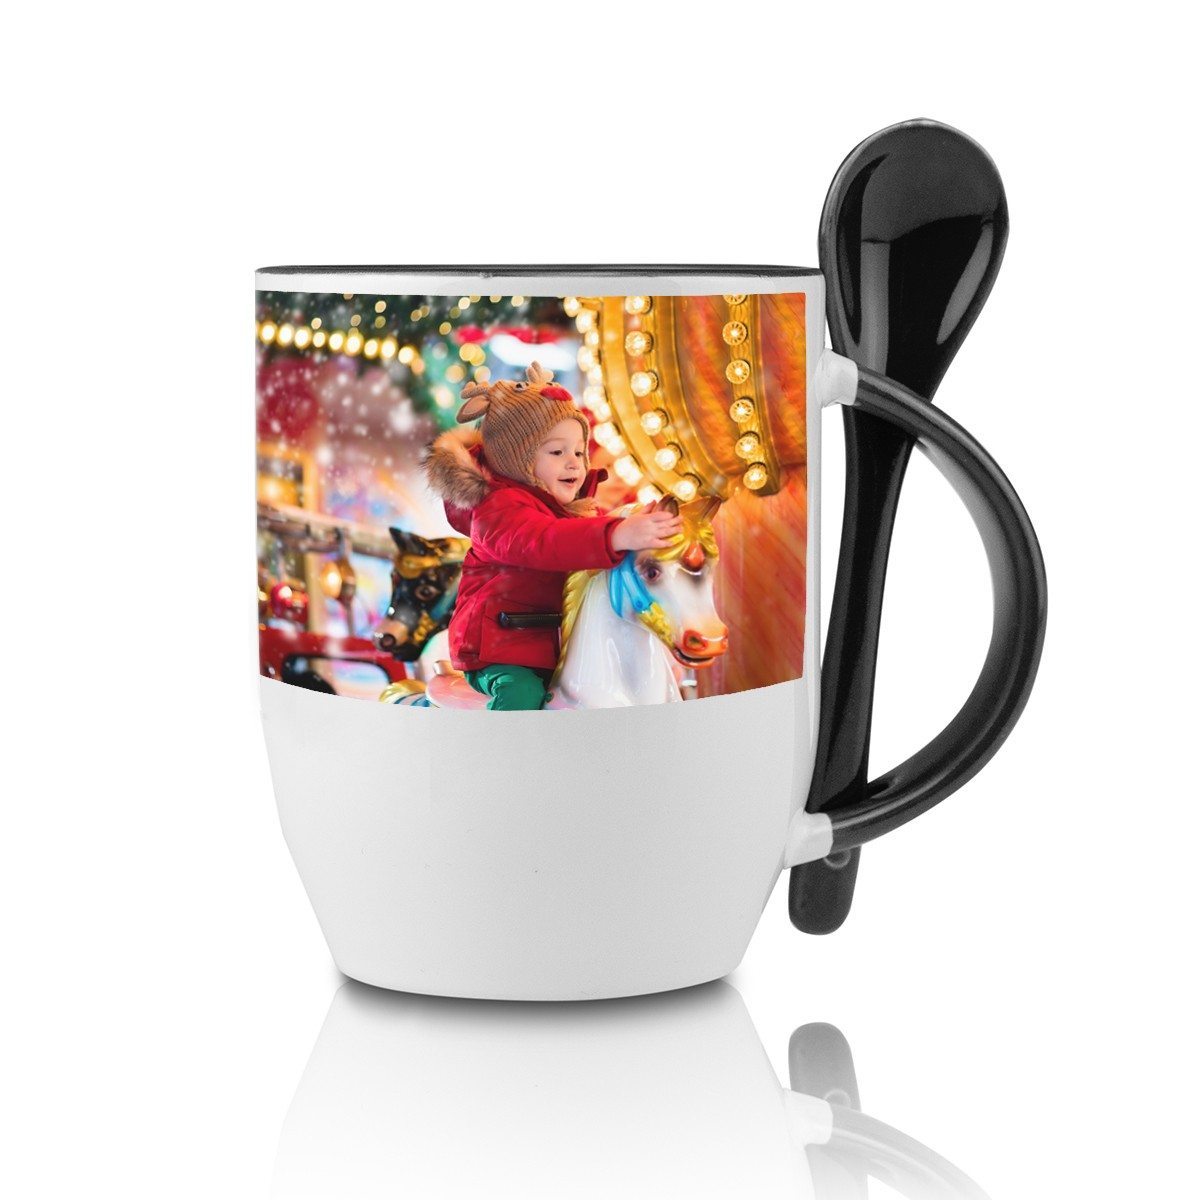 BLACK SPOON CUP WITH PHOTO PRINT